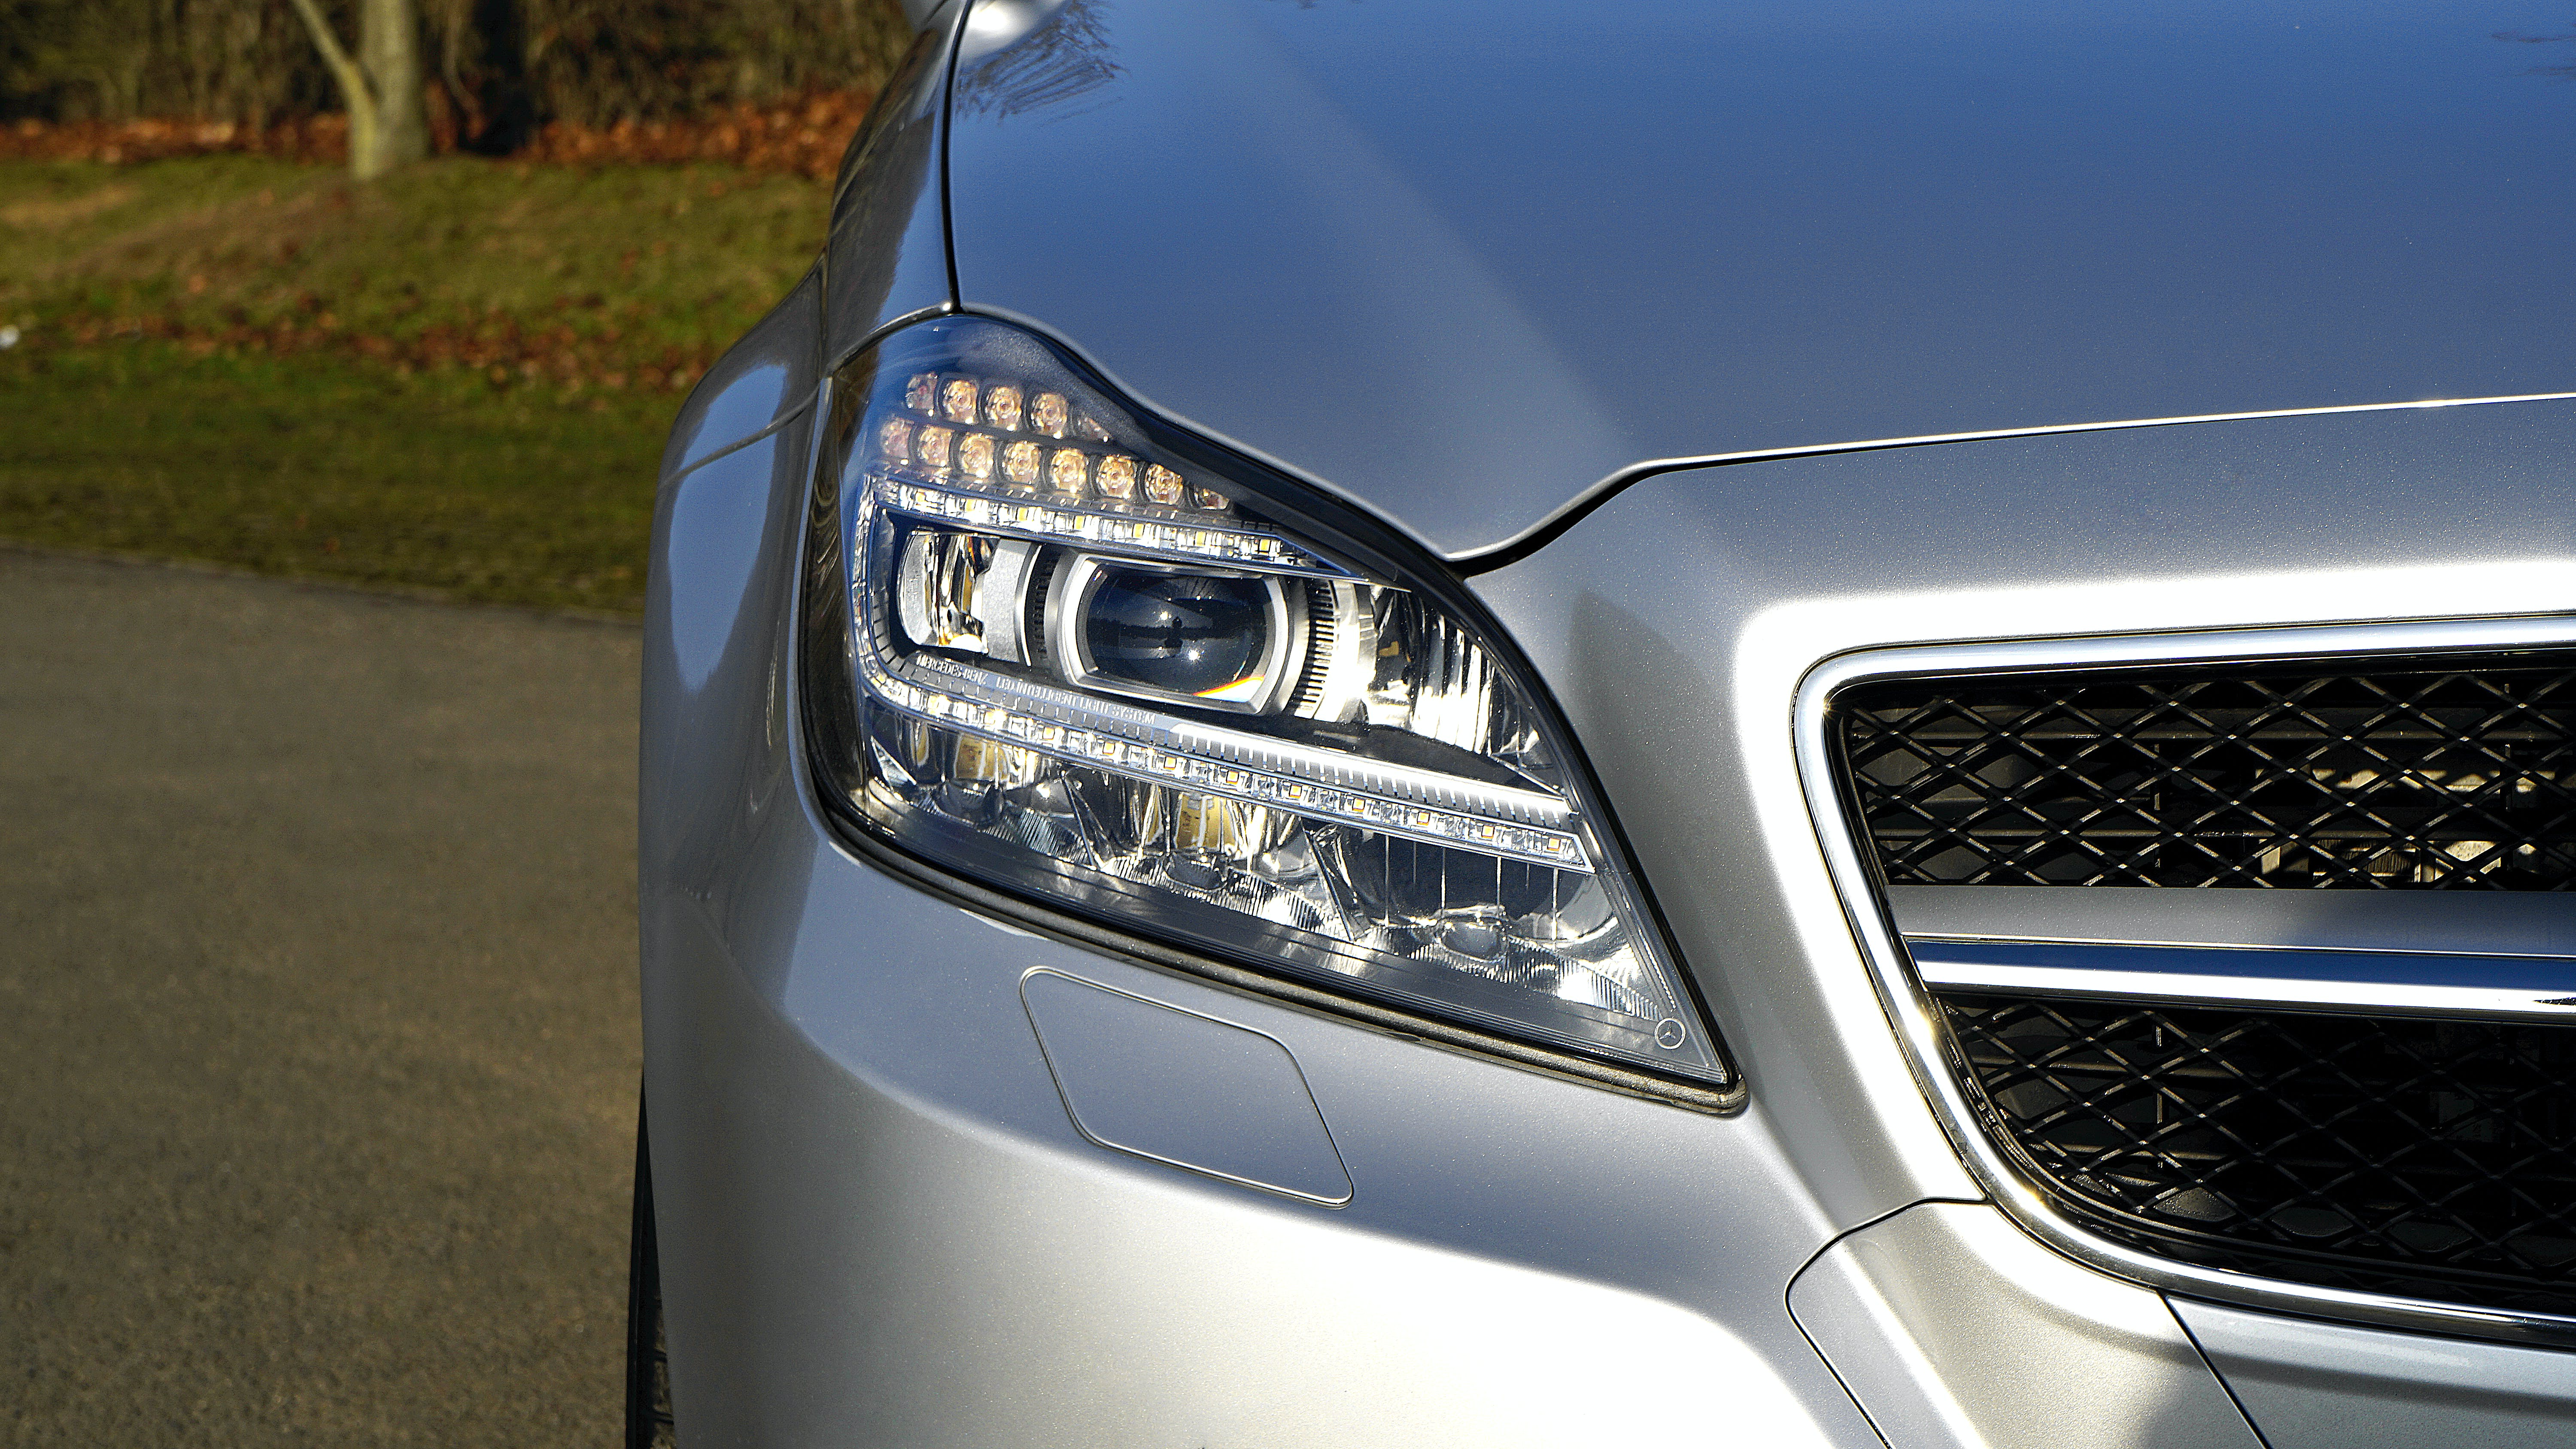 Projector Headlight of Silver Car